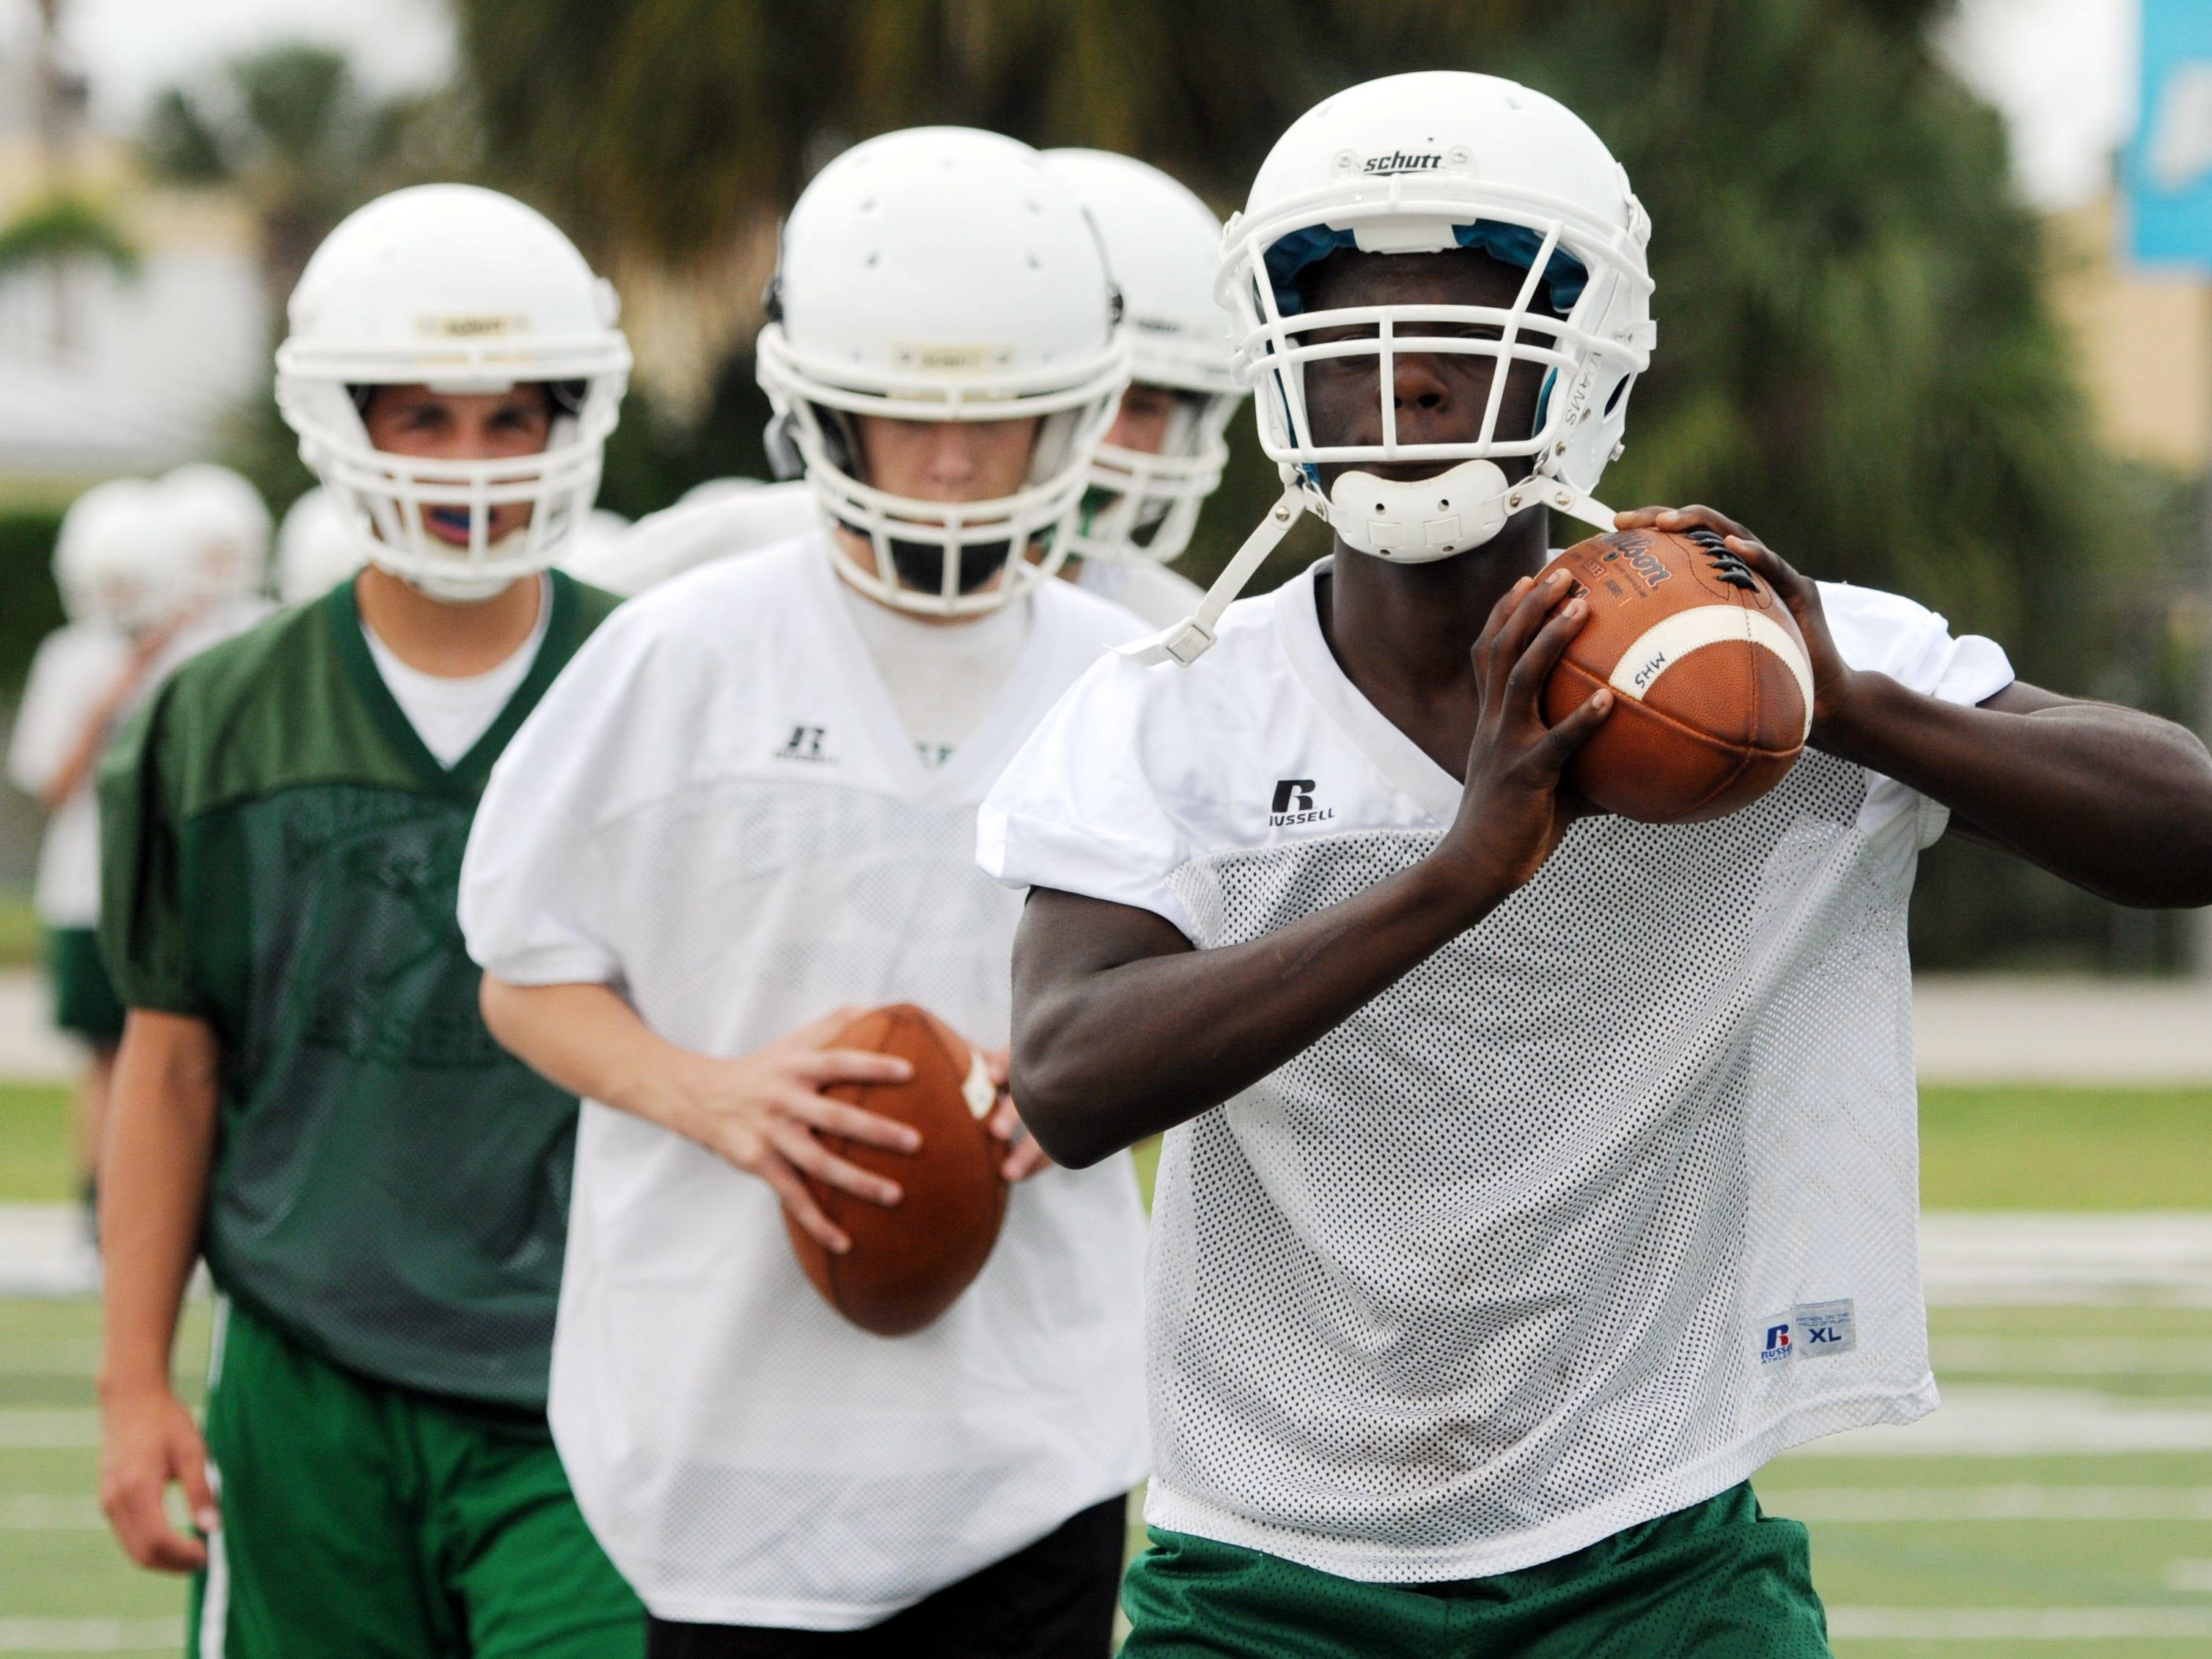 Potential quarterbacks go through agility drills during spring football practice this month in Melbourne.